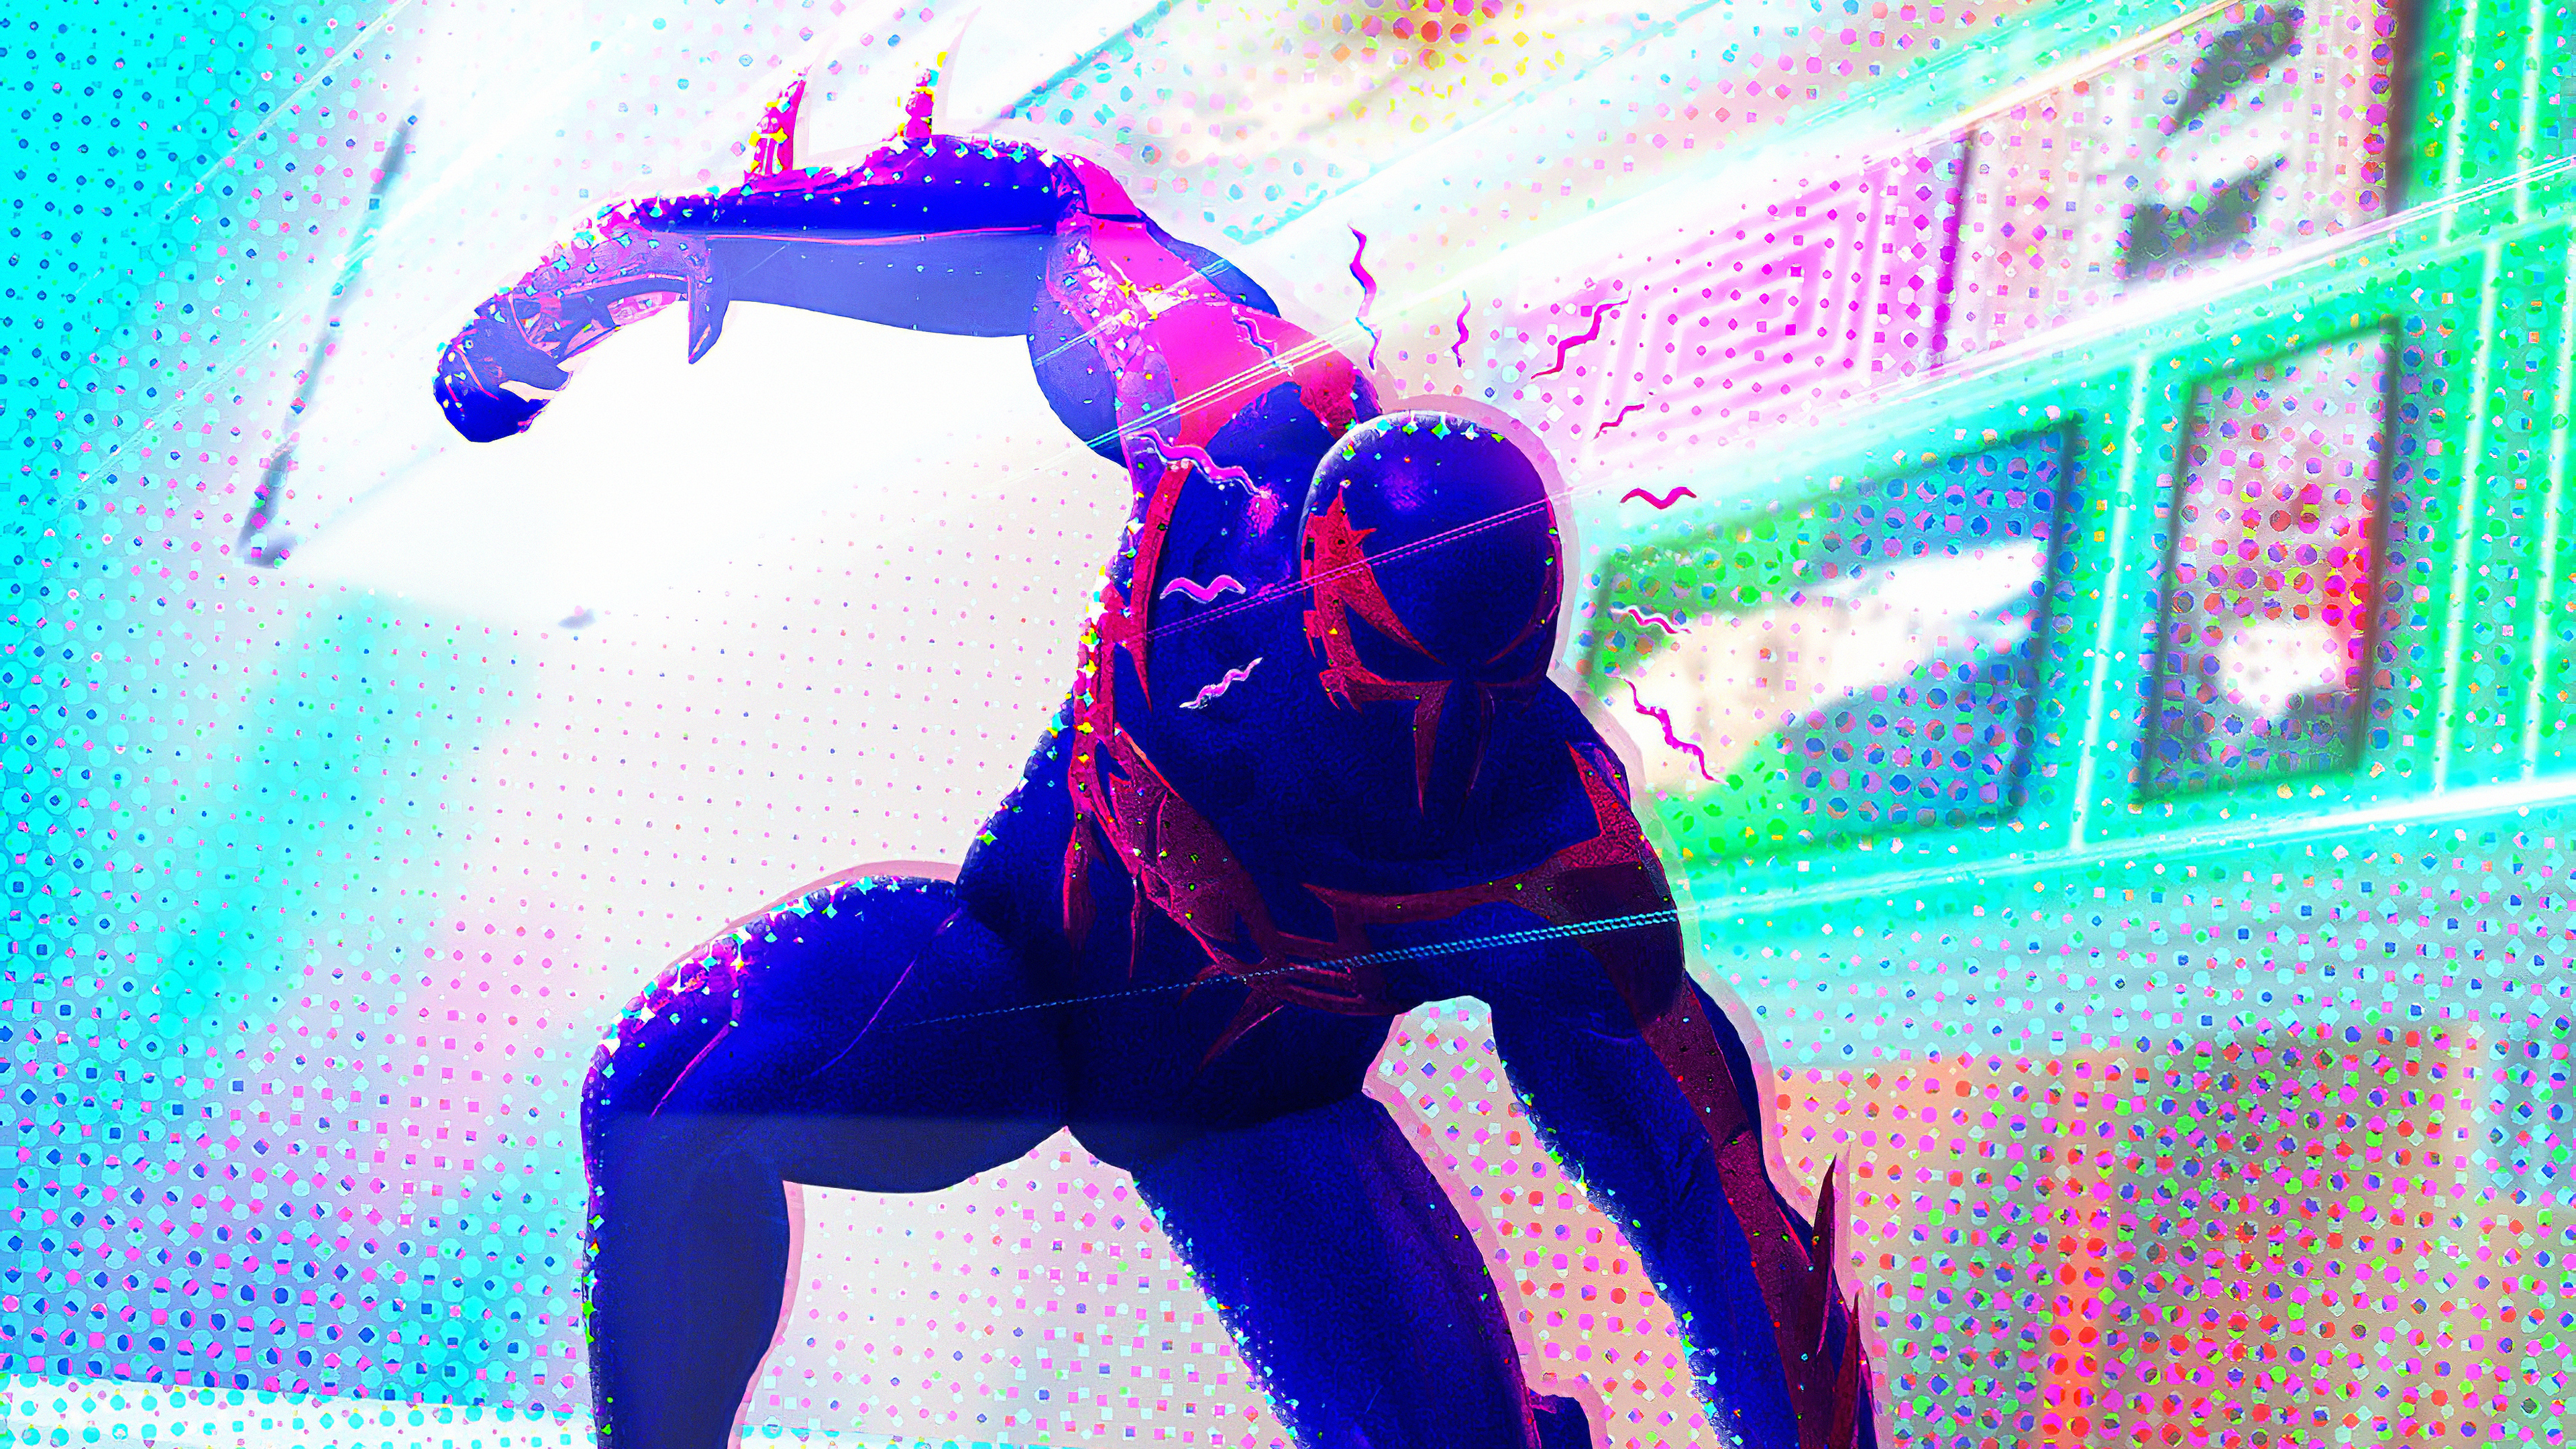 Wallpaper 4k Spiderman 2099 Spider Verse 2 Art Spiderman 2099 4k